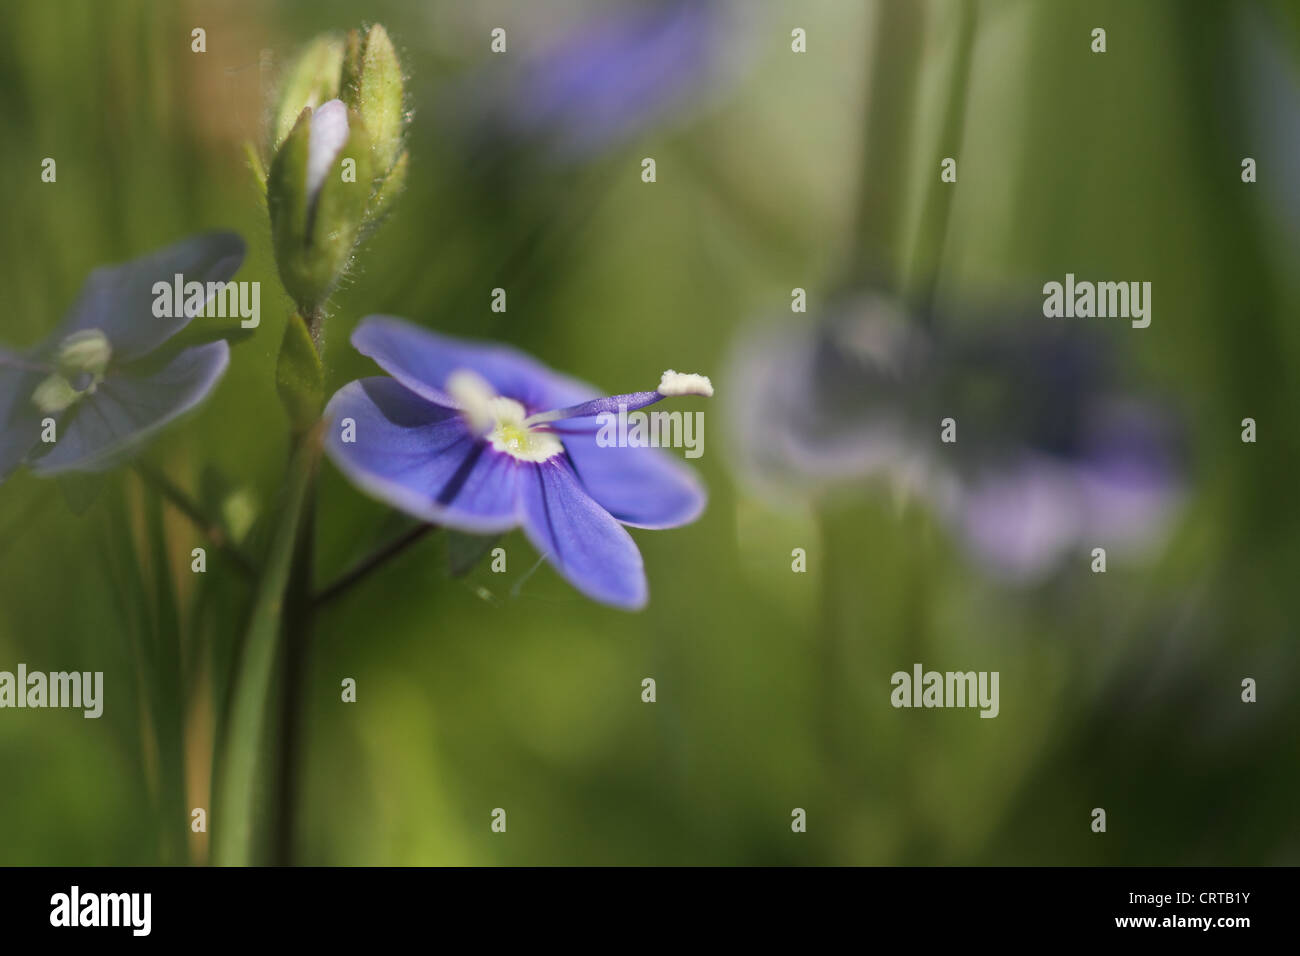 blue flowers forget me nots blurred background - Stock Image